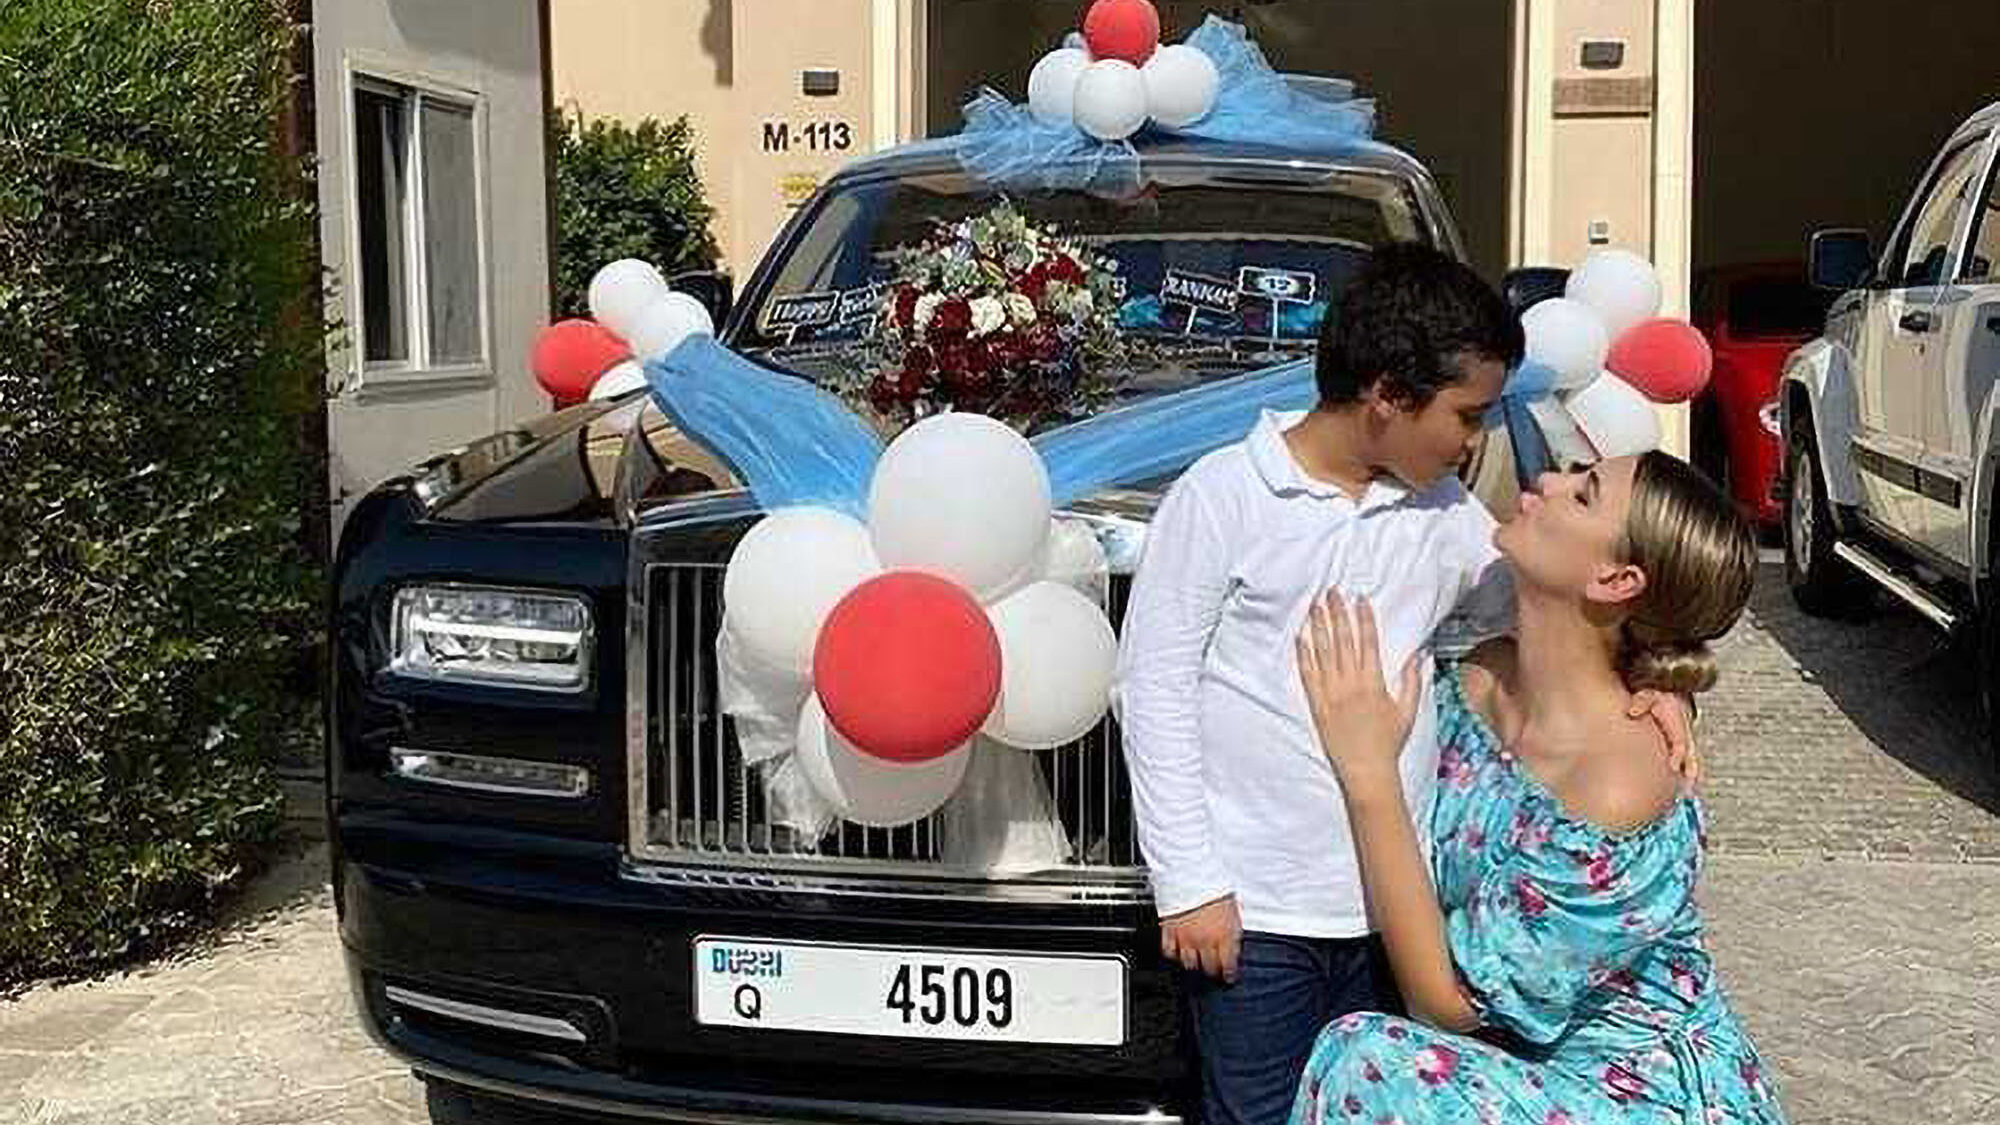 VIDEO: Millionaire Mom Gives 12-Year-Old a Rolls-Royce for Birthday